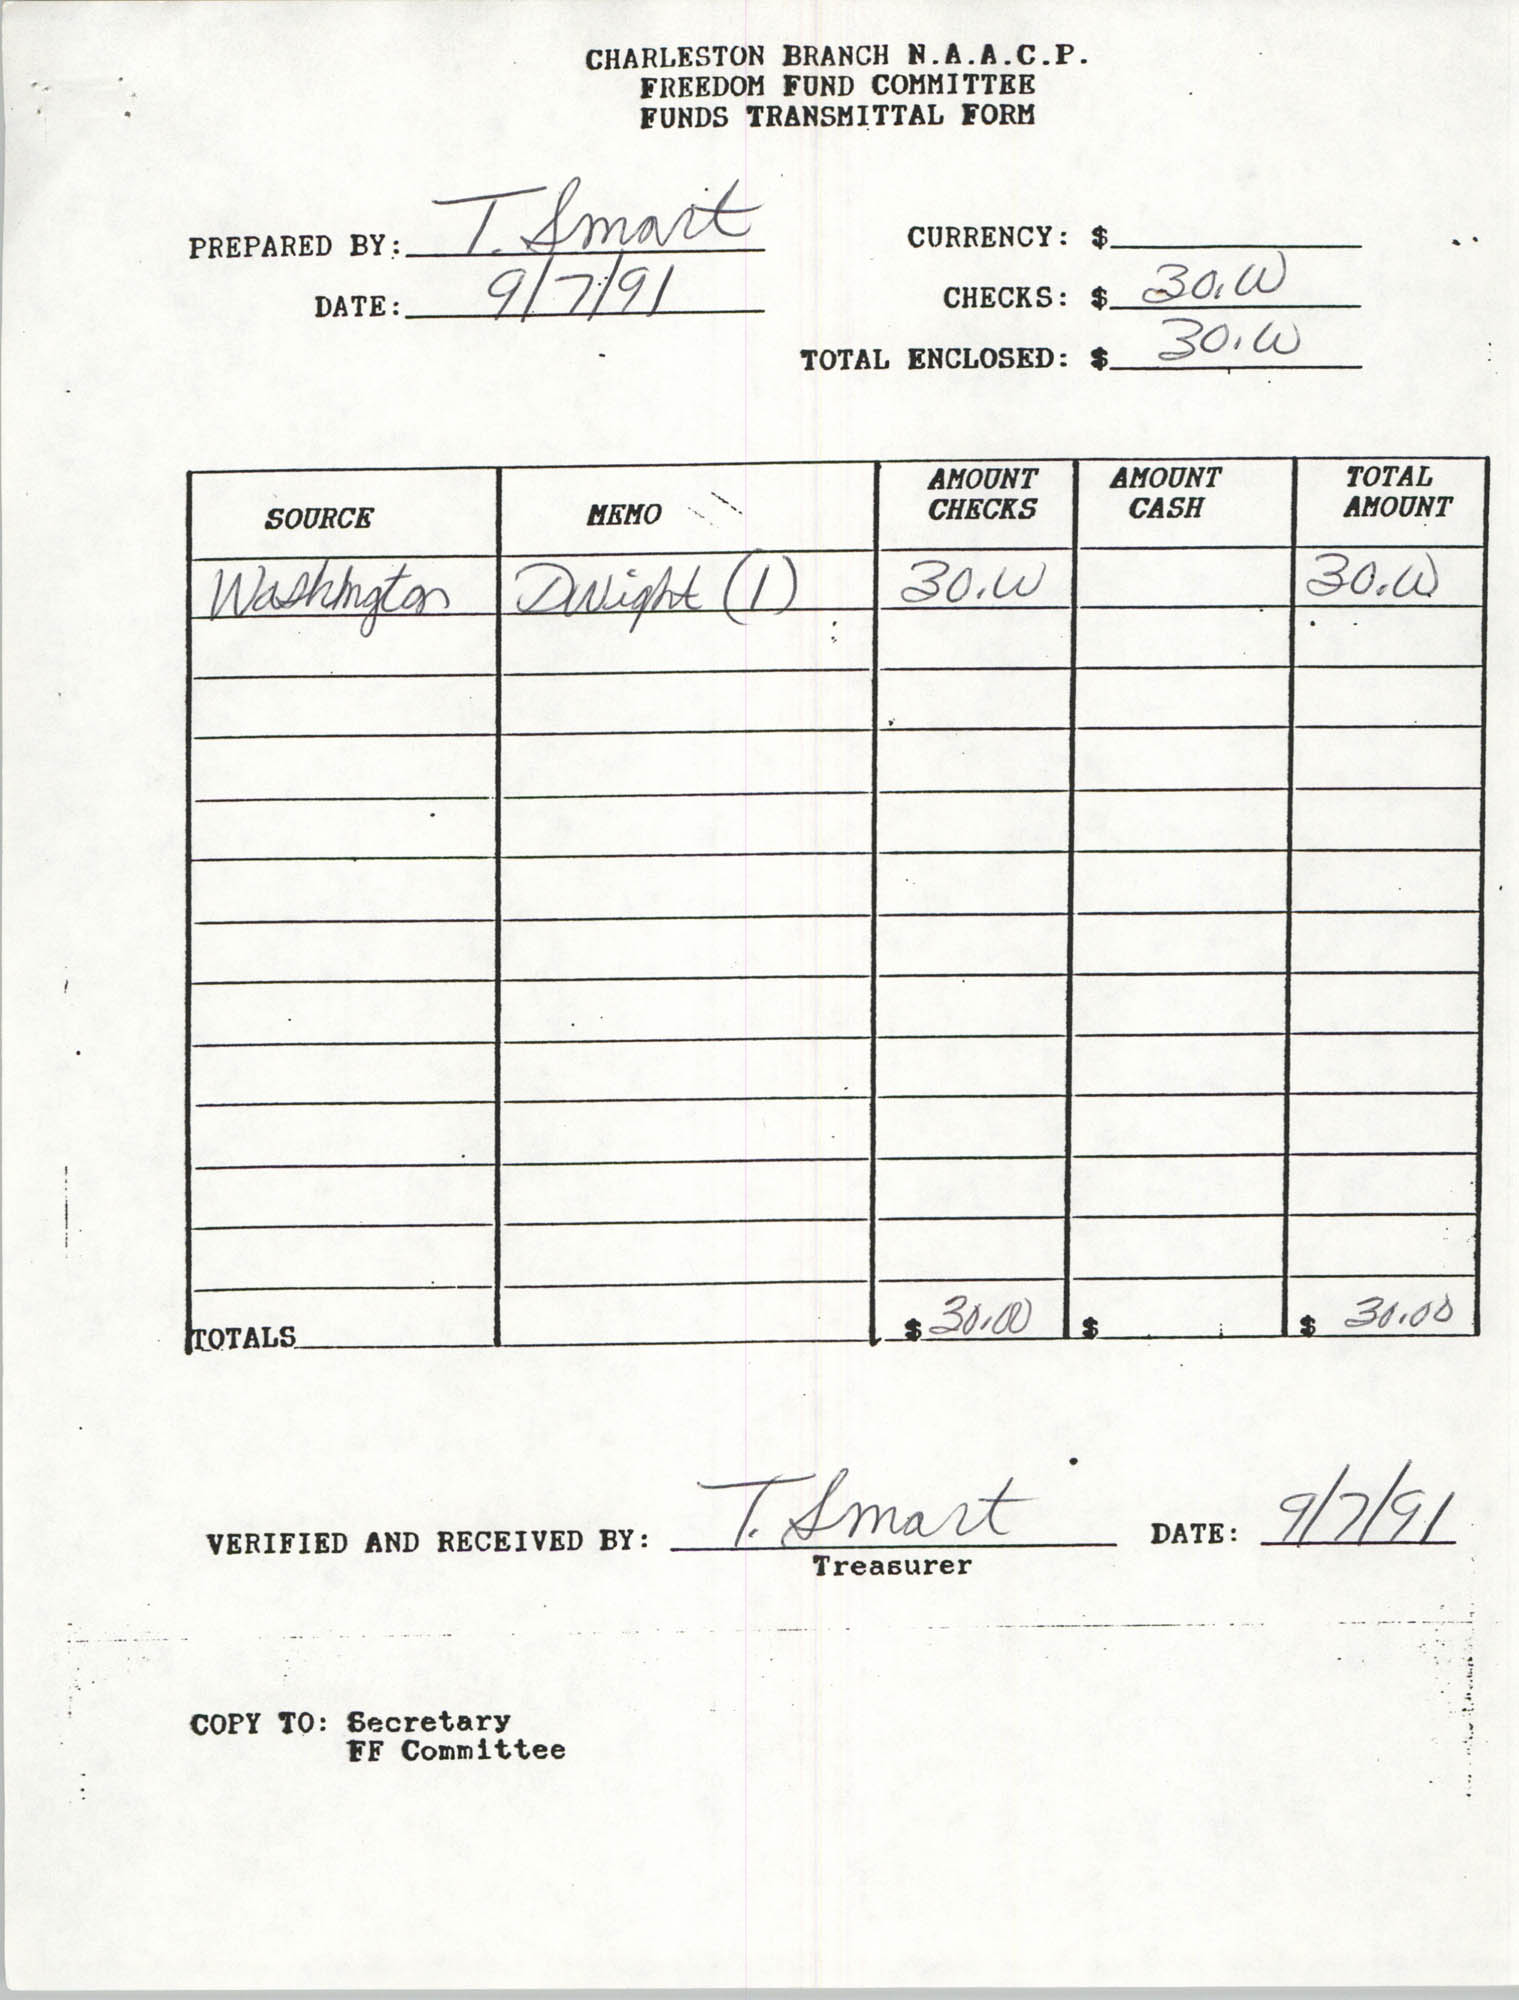 Charleston Branch of the NAACP Funds Transmittal Forms, September 1991, Page 27